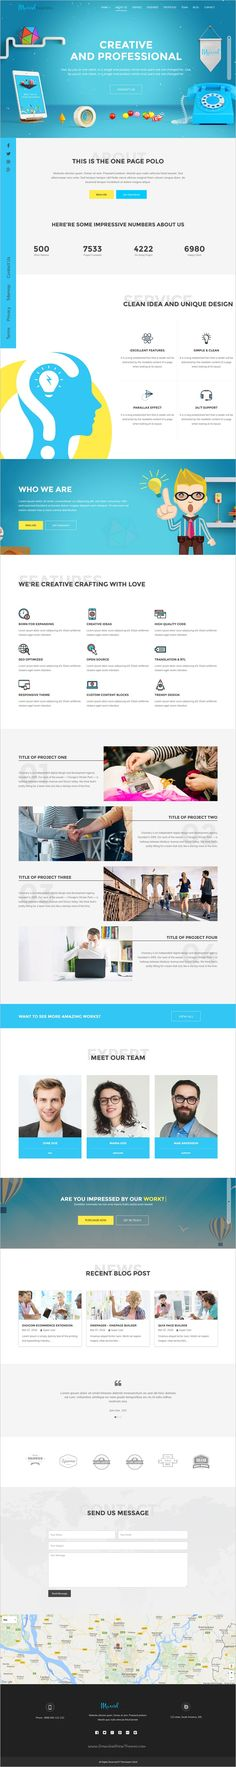 Mavel is a wonderful responsive #Joomla template for #webdesign one page stunning #agency website with 6 unique homepage layouts download now➩  https://themeforest.net/item/marvel-best-onepage-joomla-template-with-quix-pagebuilder/18921436?ref=Datasata